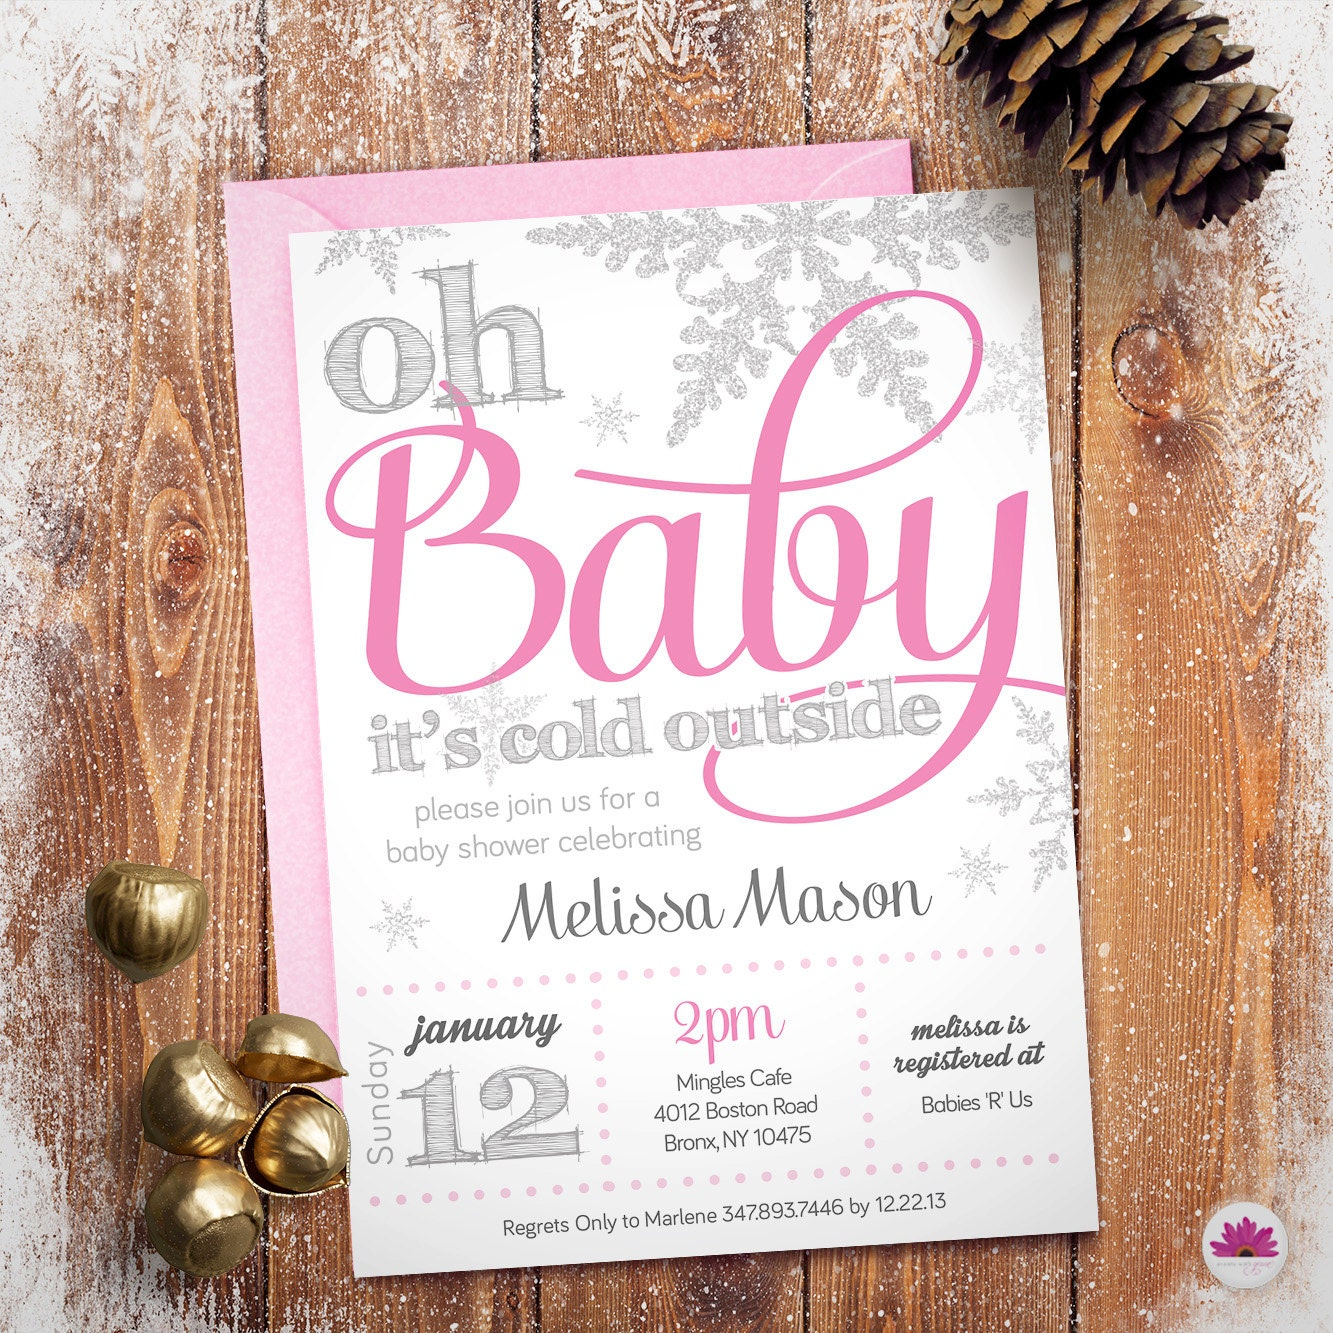 Baby Shower Invitation Winter Wonderland Theme Digital